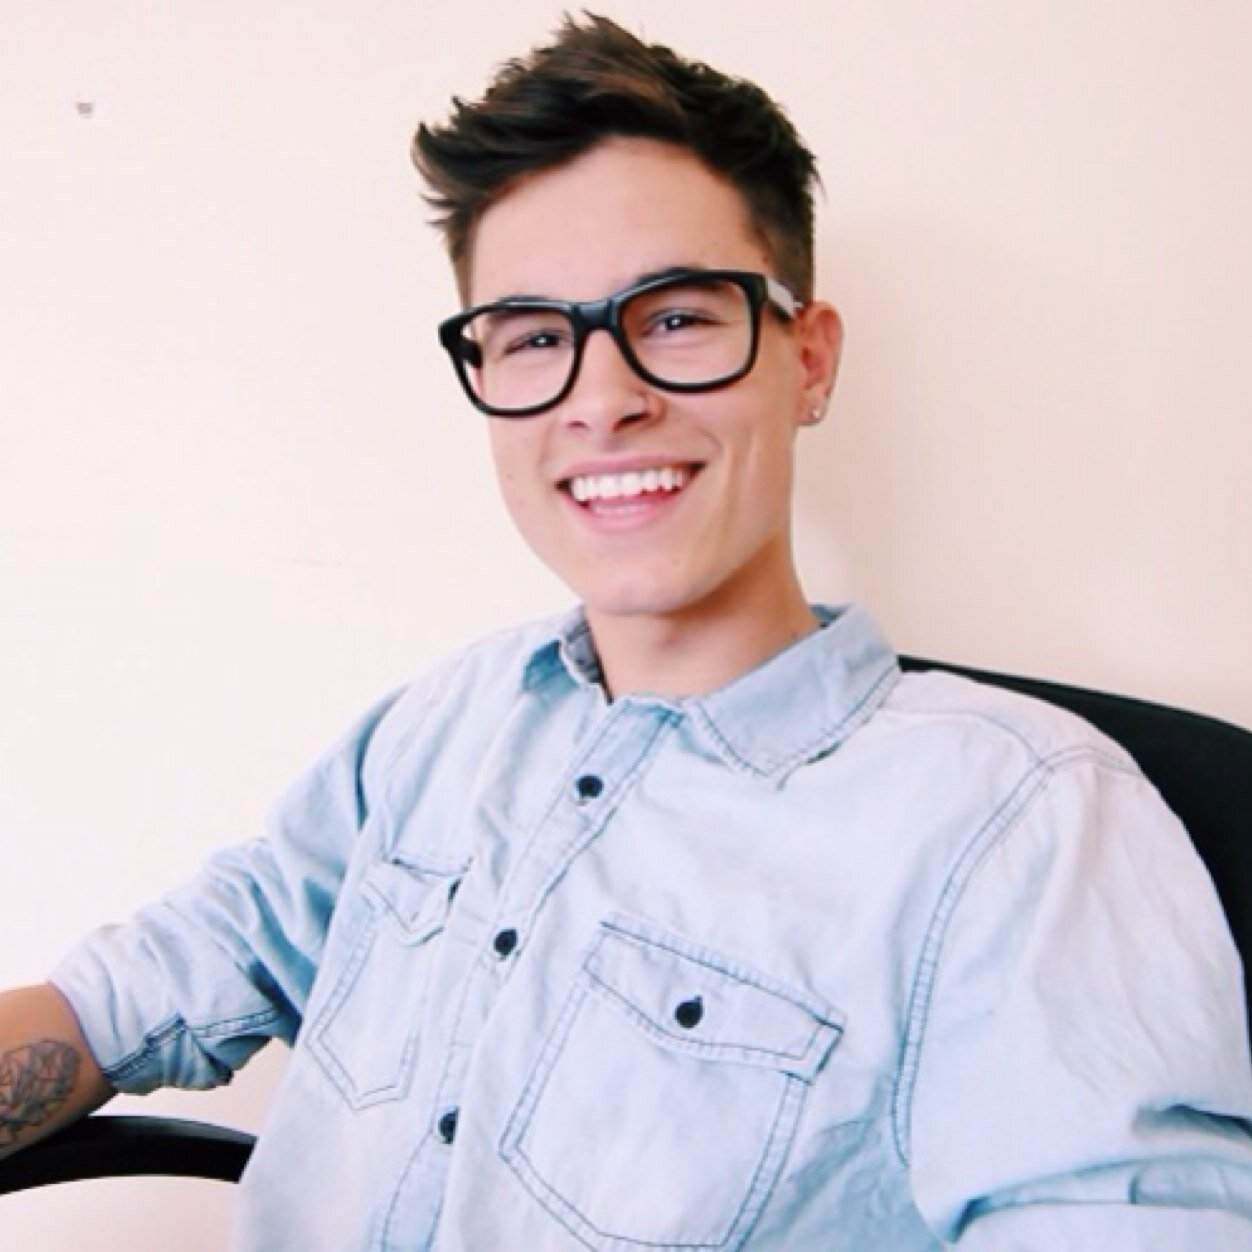 Web Video Star Kian Lawley - age: 21